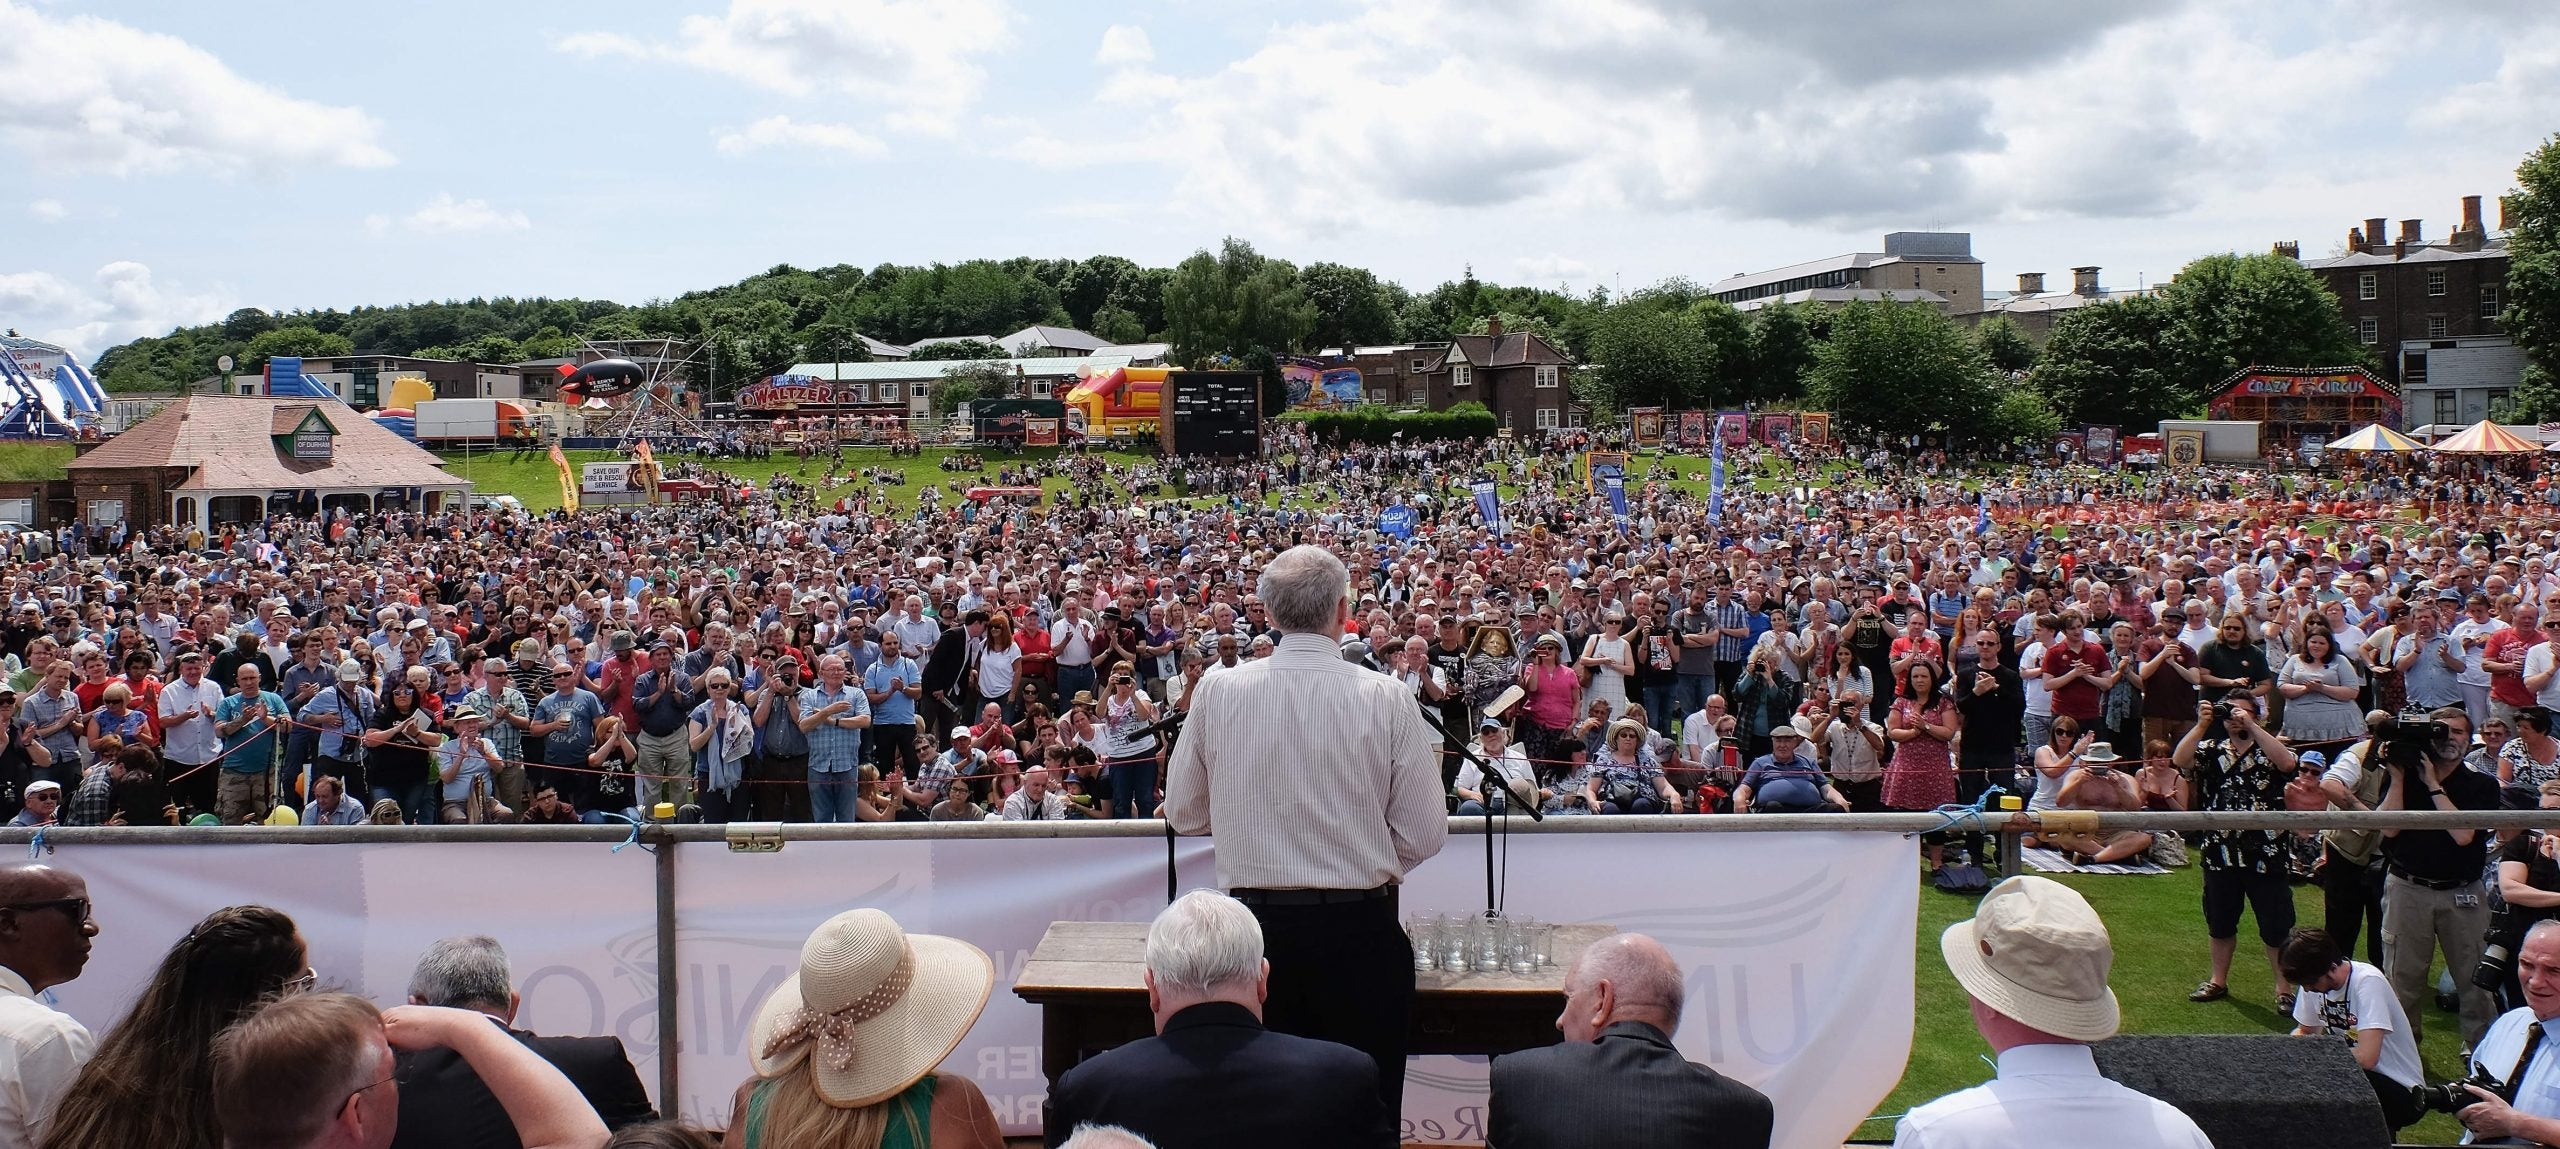 Don't demonise the rabble: why everything you think about crowds is wrong